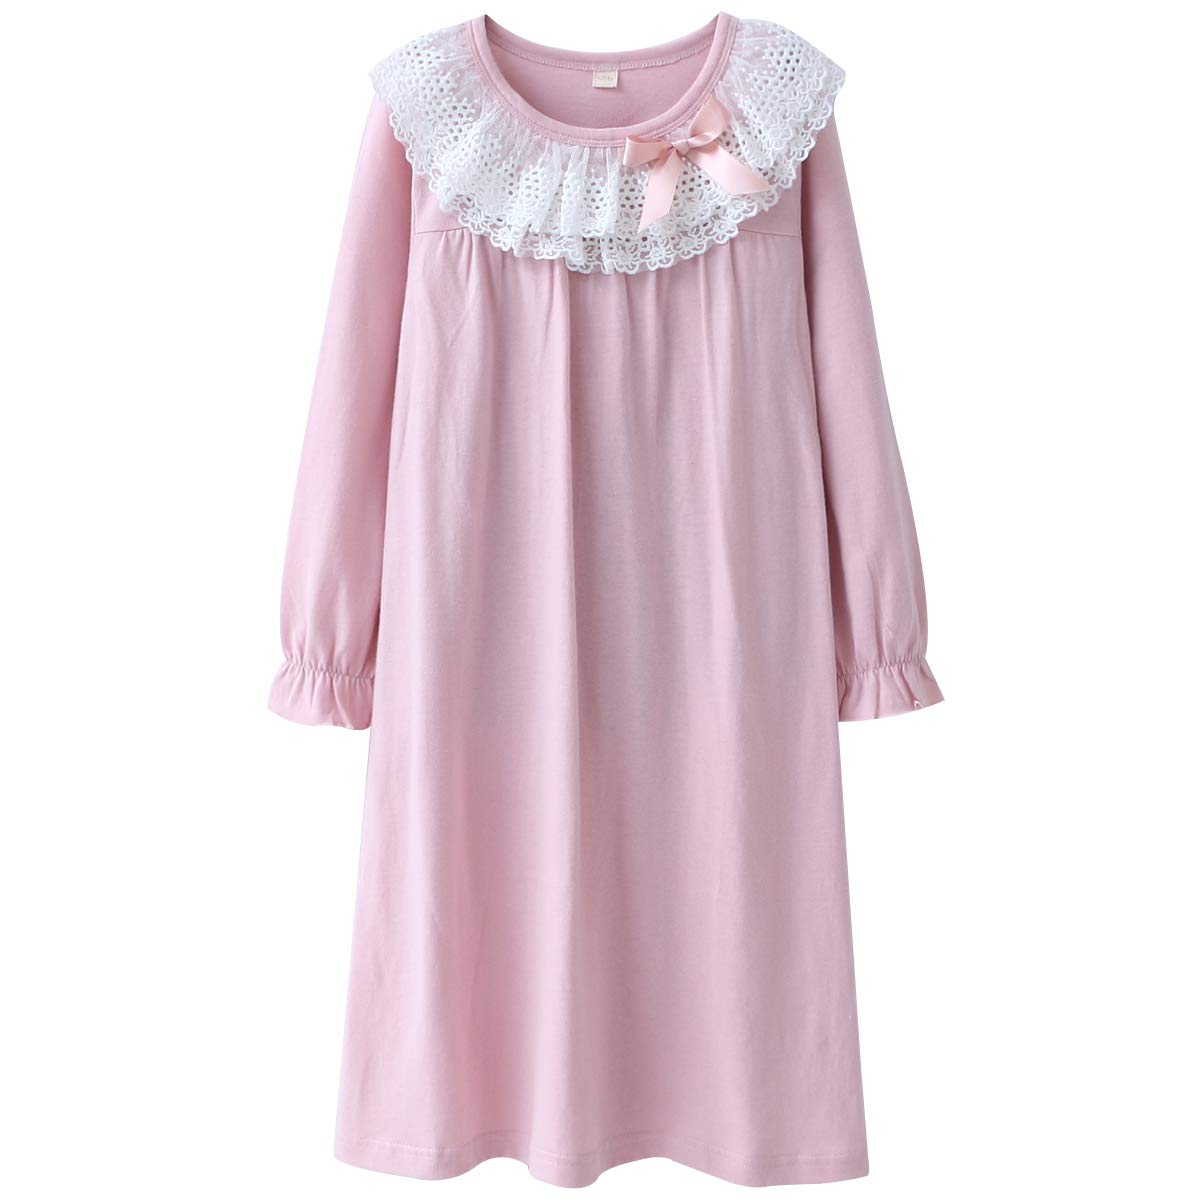 DGAGA Kids Girls Cotton Lace Nightgown Long Sleeve Solid Sleepwear Top Dresses Pink 6-7 Years /130cm